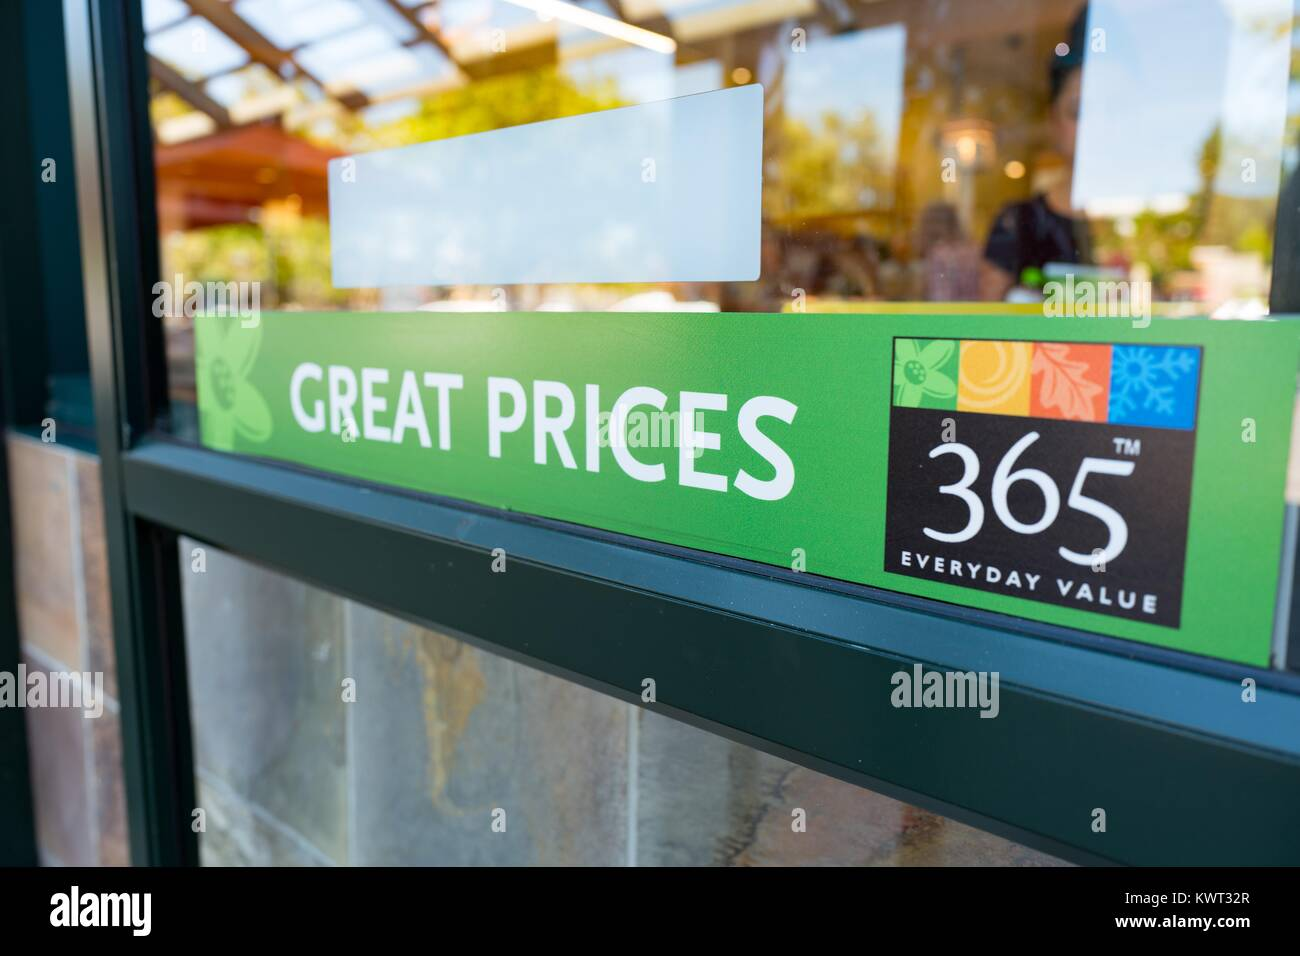 Signage At The Whole Foods Market Store In San Ramon California Reading Great Prices 365 Everyday Value Advertising Of Markets